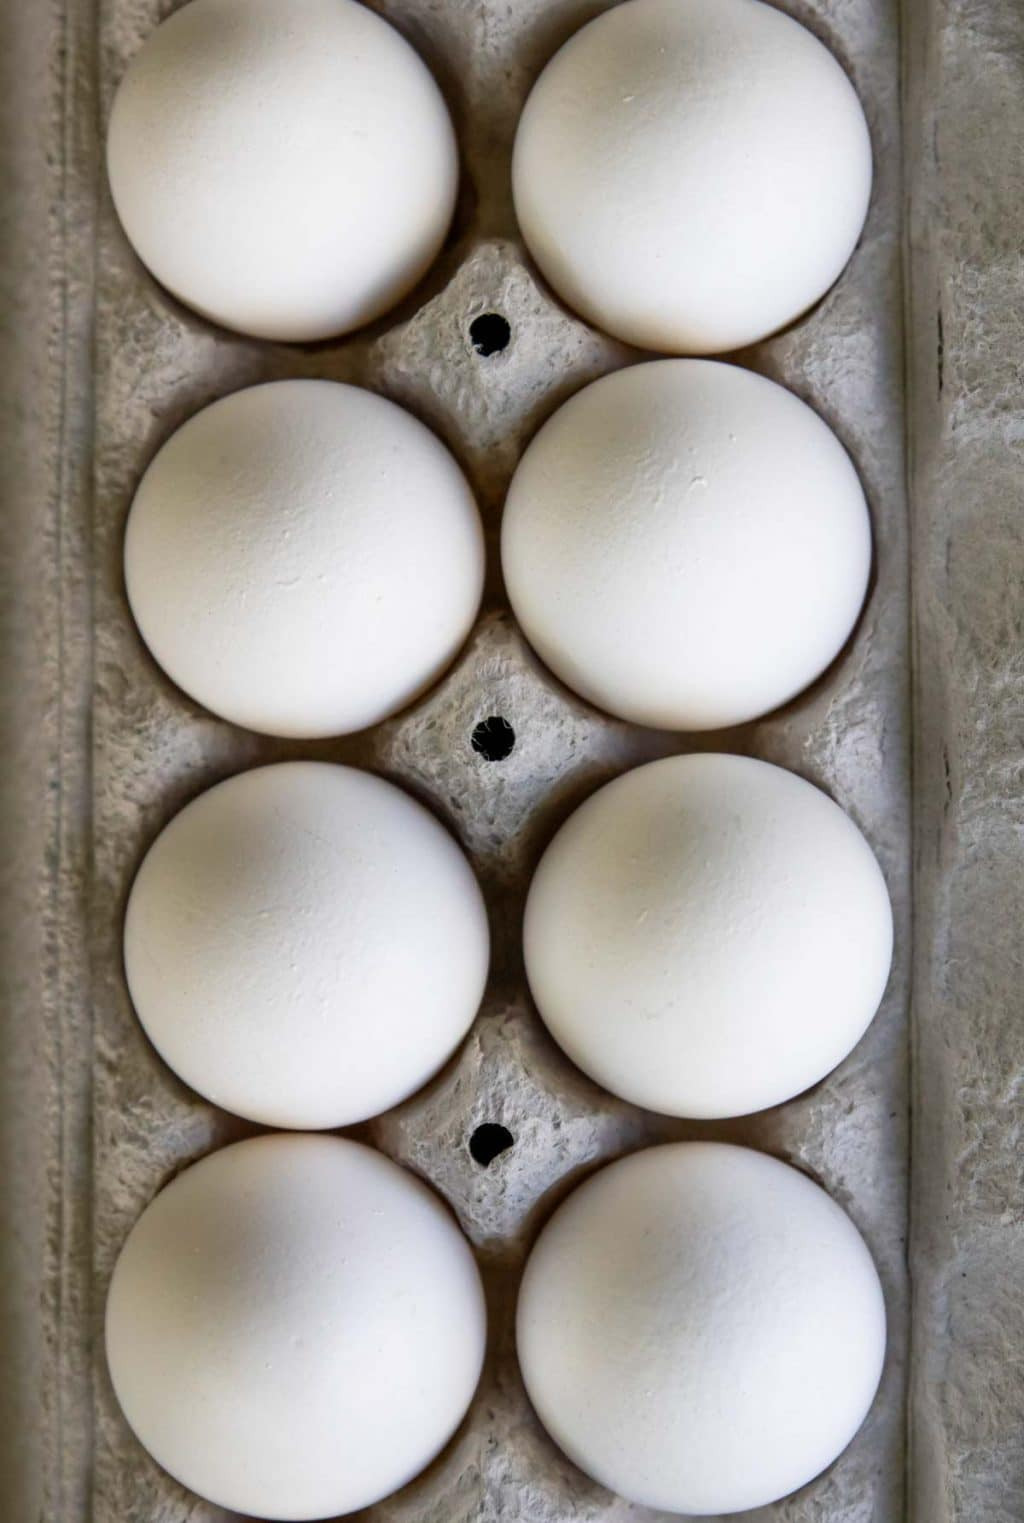 Hard Boiled Eggs in an egg carton